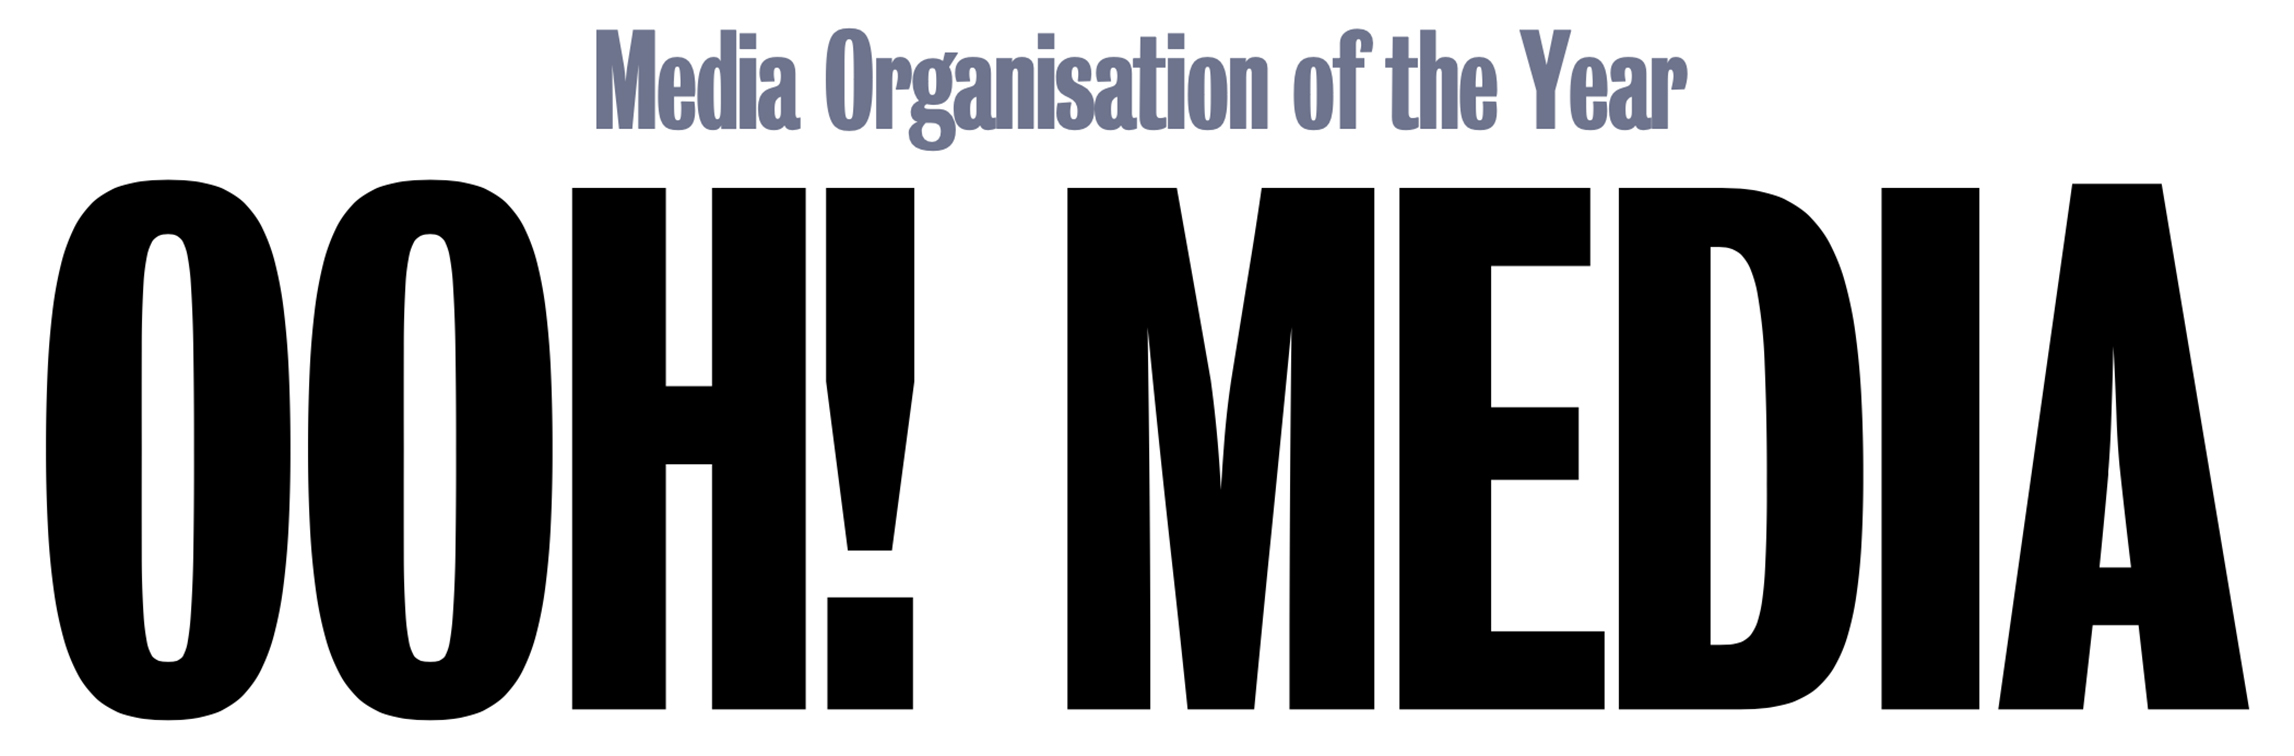 oOh!Media goes back-to-back winning the Media Organisation of the Year award at the 2021 Campaign Brief WA Awards